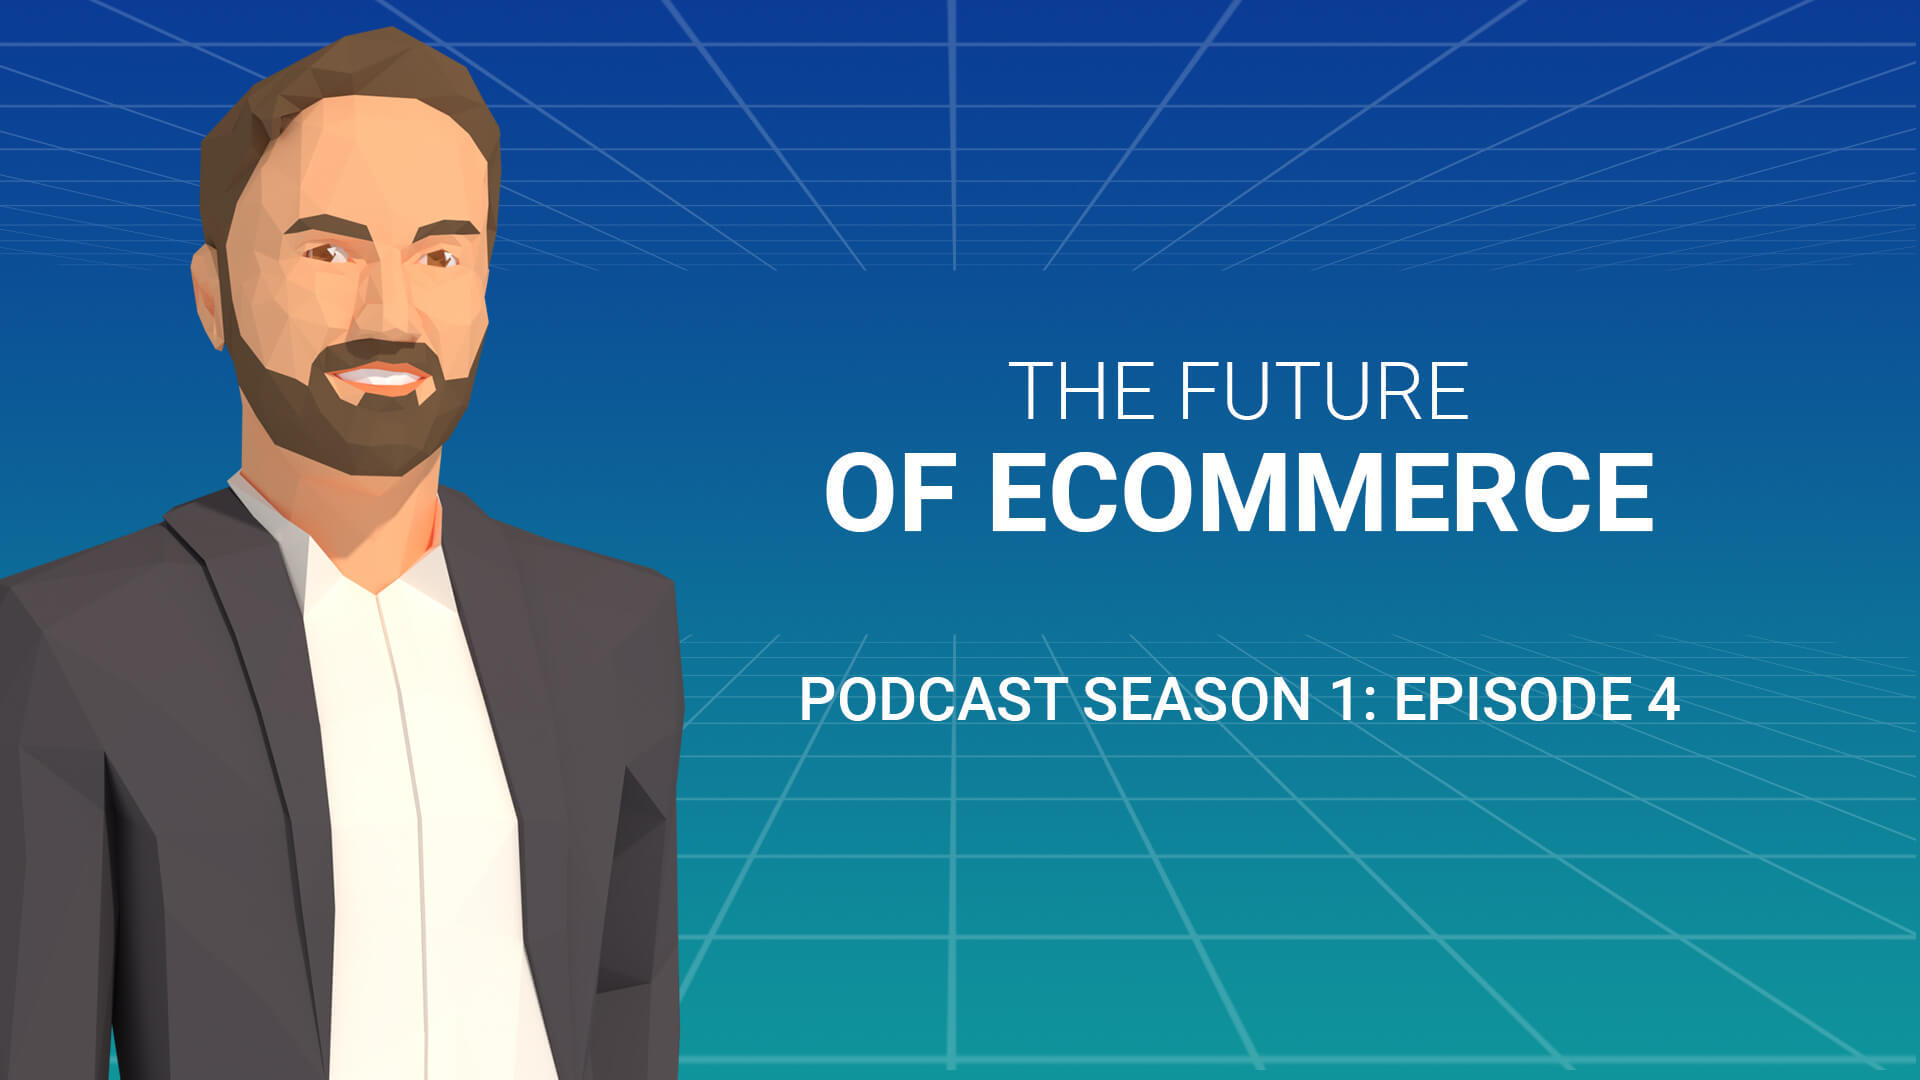 Ecommerce and cryptocurrency Podcast